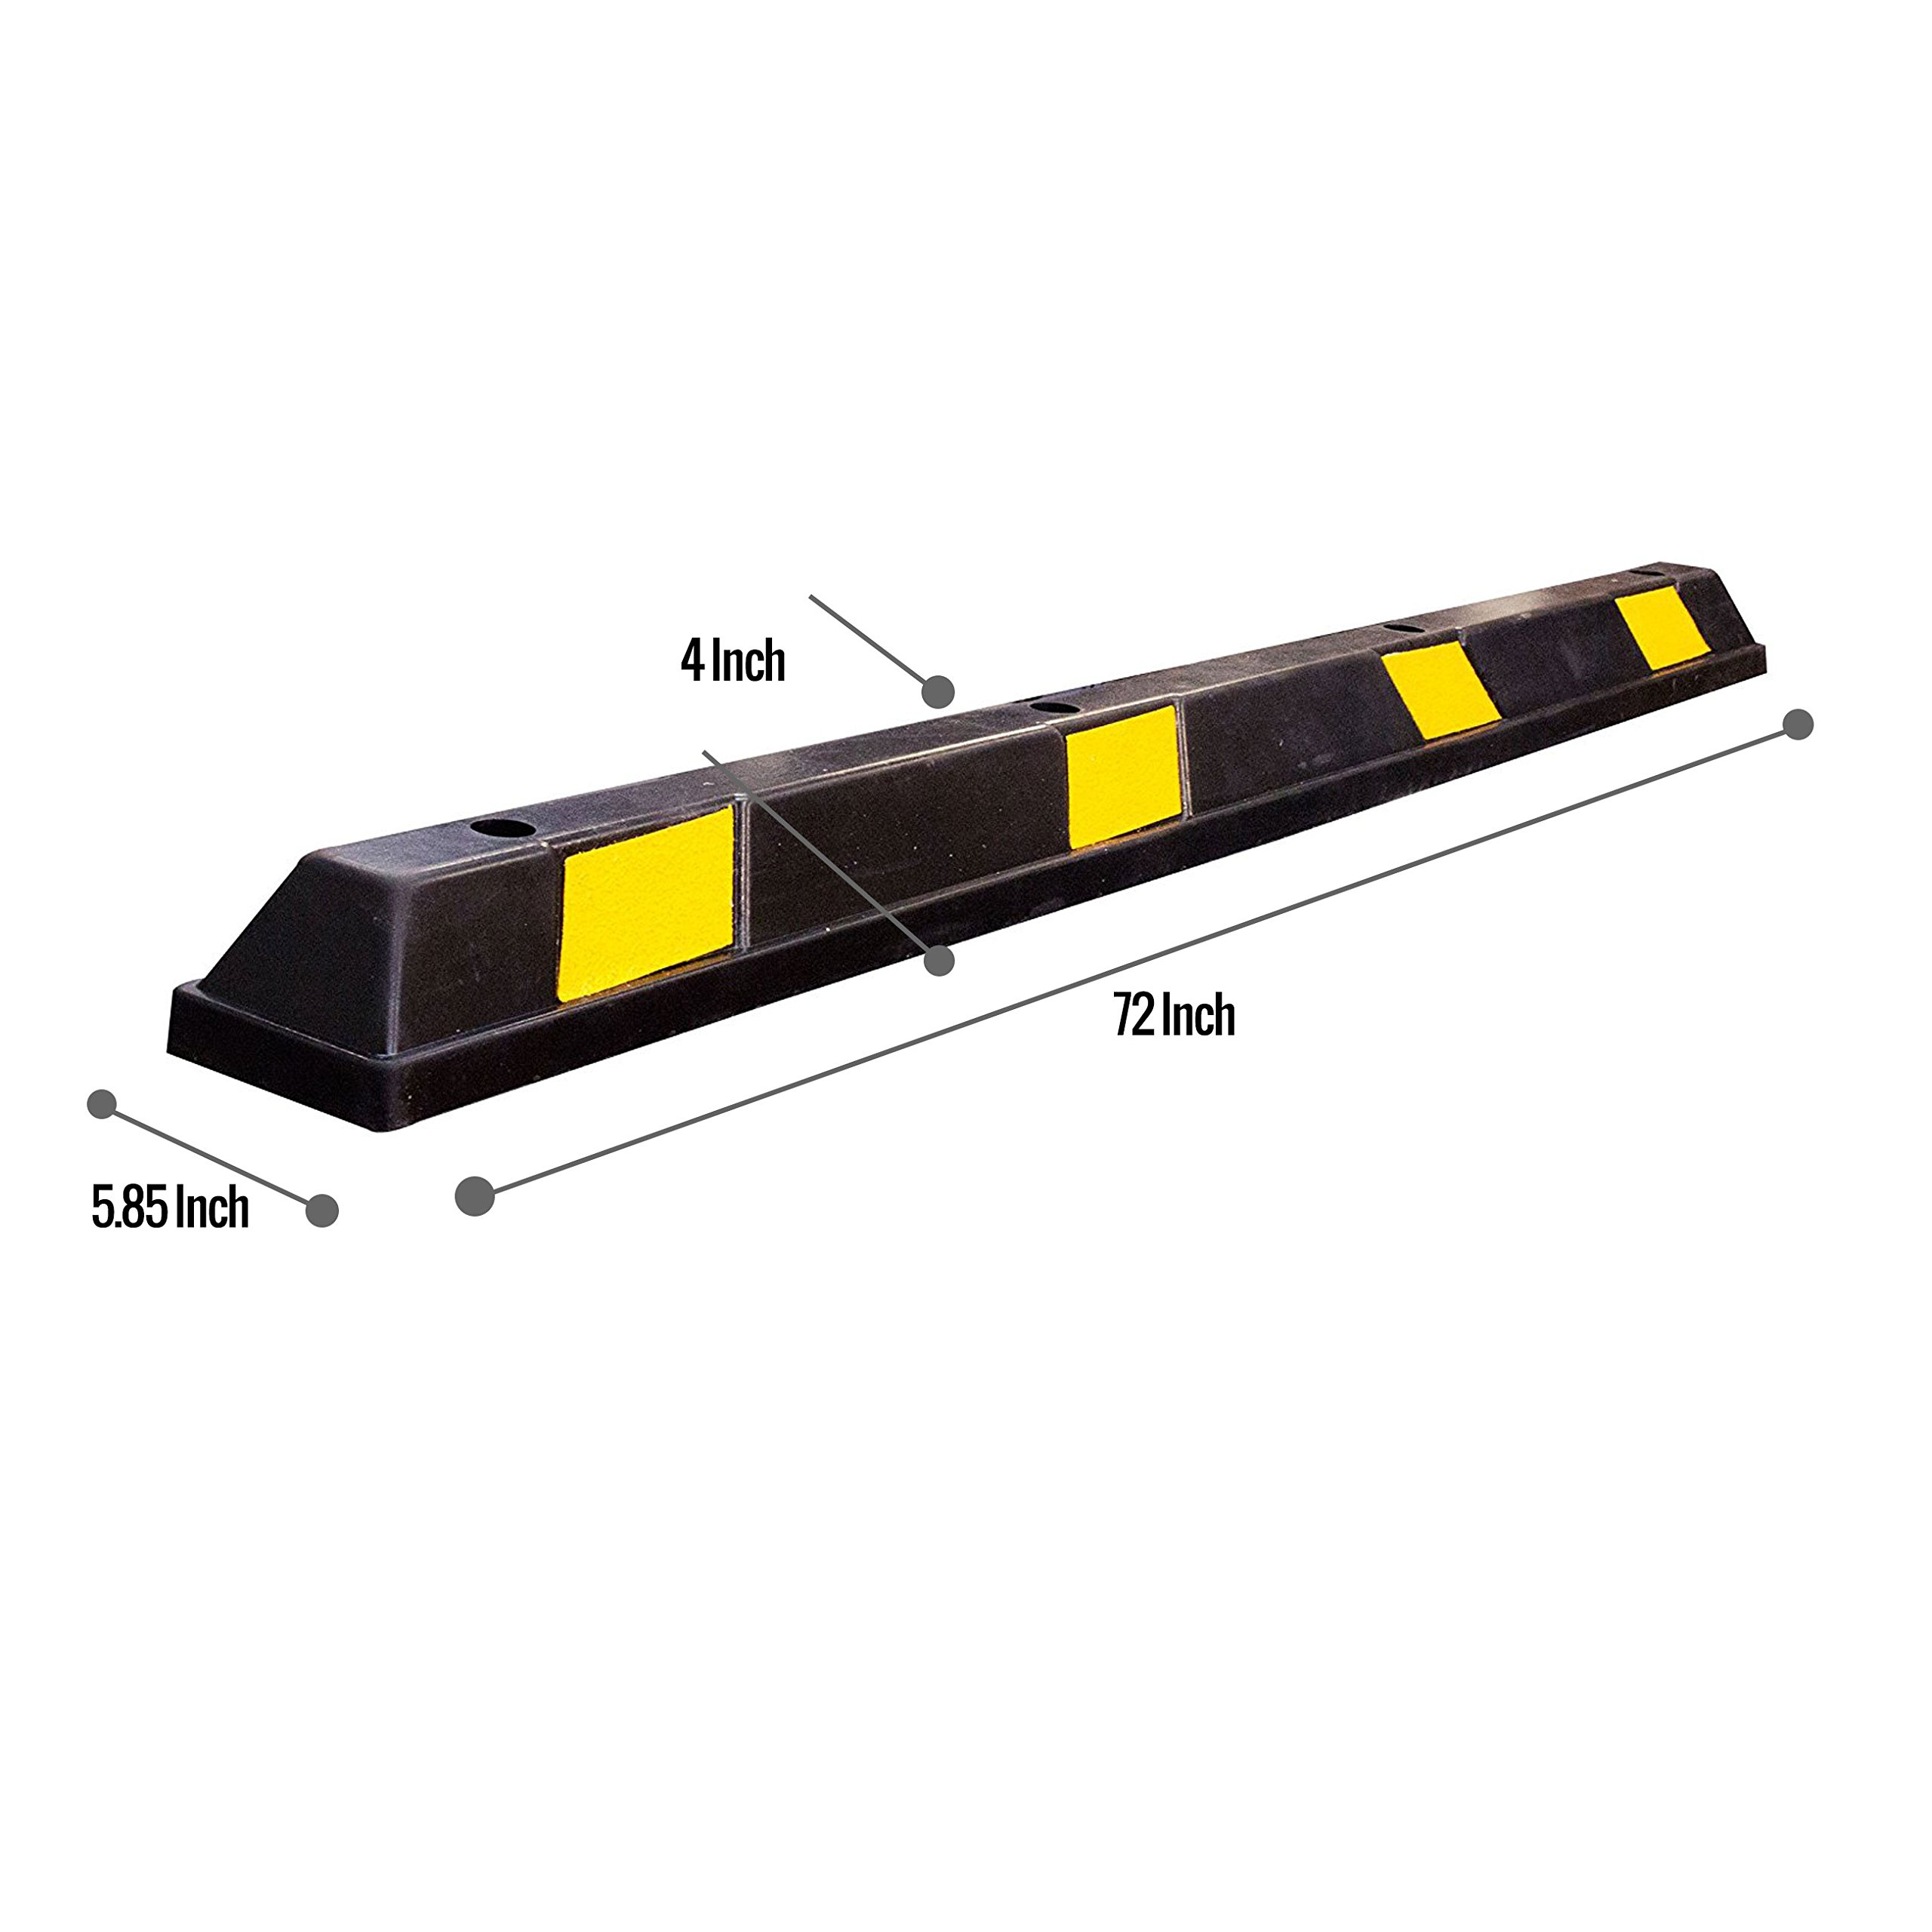 RK-BP72 Heavy Duty Rubber Parking Curb, Parking Block, 72 -Inch for Car, Truck, RV and Trailer Stop Aid by RK (Image #7)